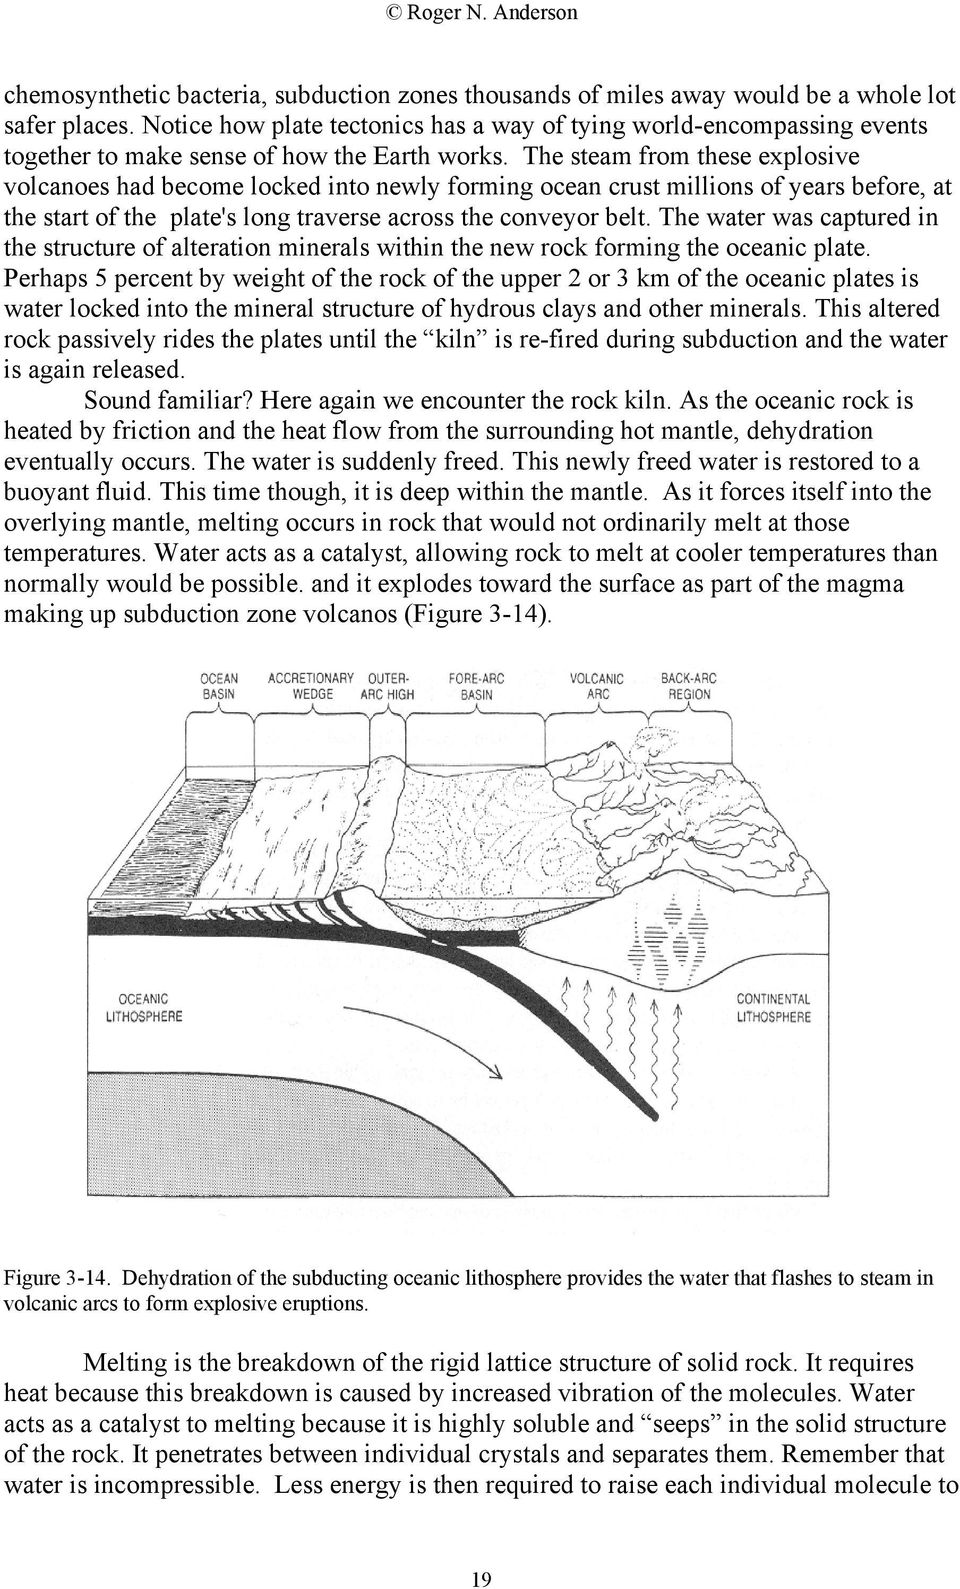 Earthquakes give us direct, observational proof that the dehydration is producing mantle melting in subduction zones. Probably the single easiest observation to make about earthquakes is the b-value.